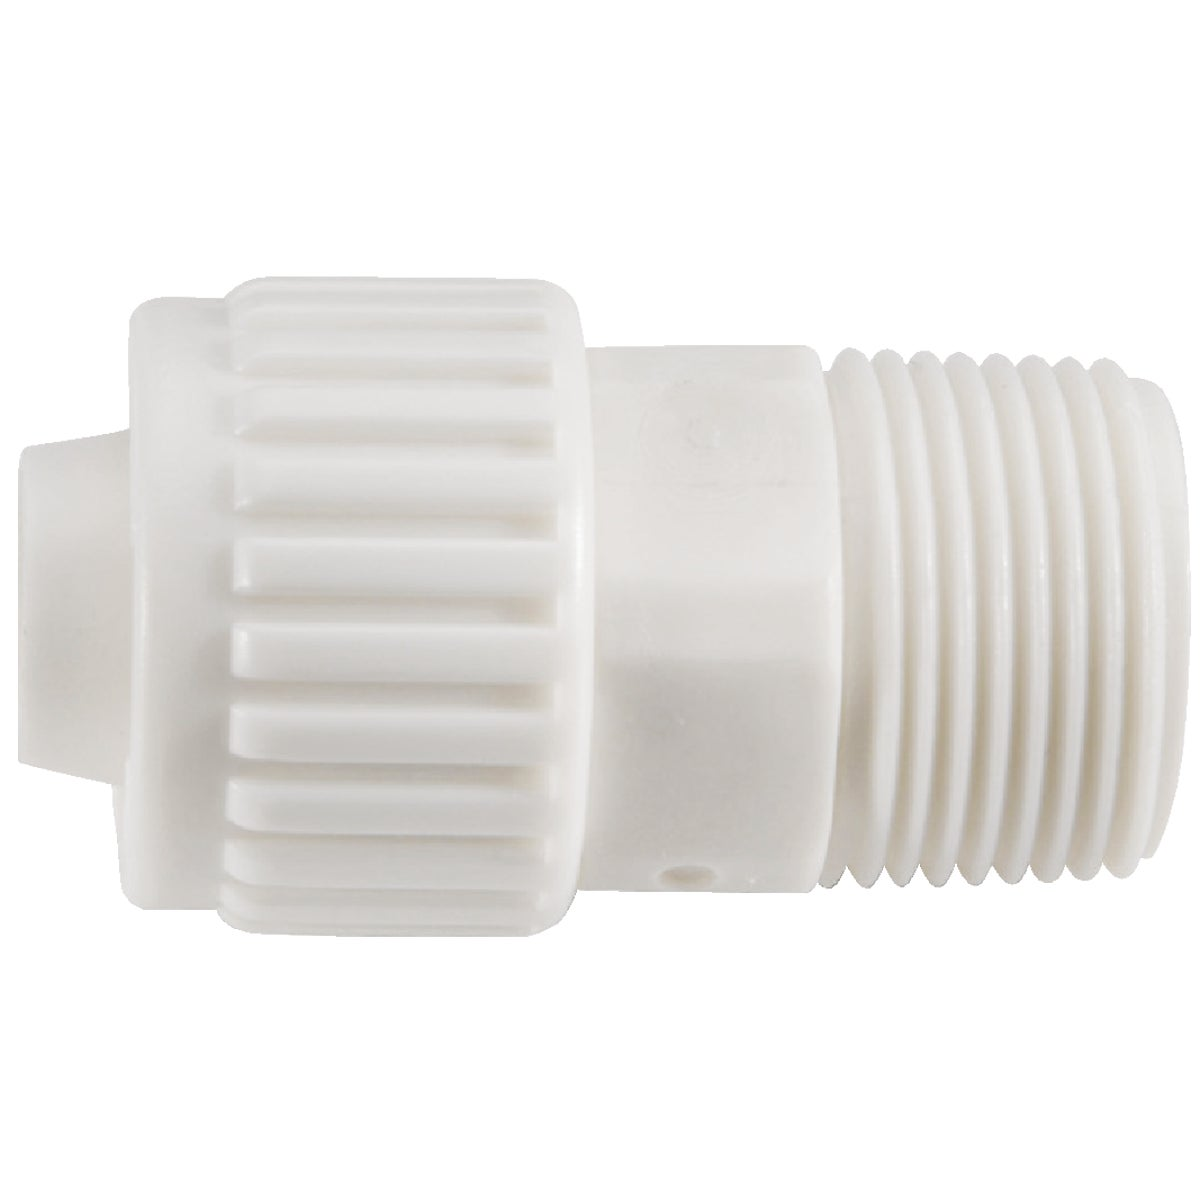 1/2X1/2MPT ADAPTER - 16842 by Flair It West